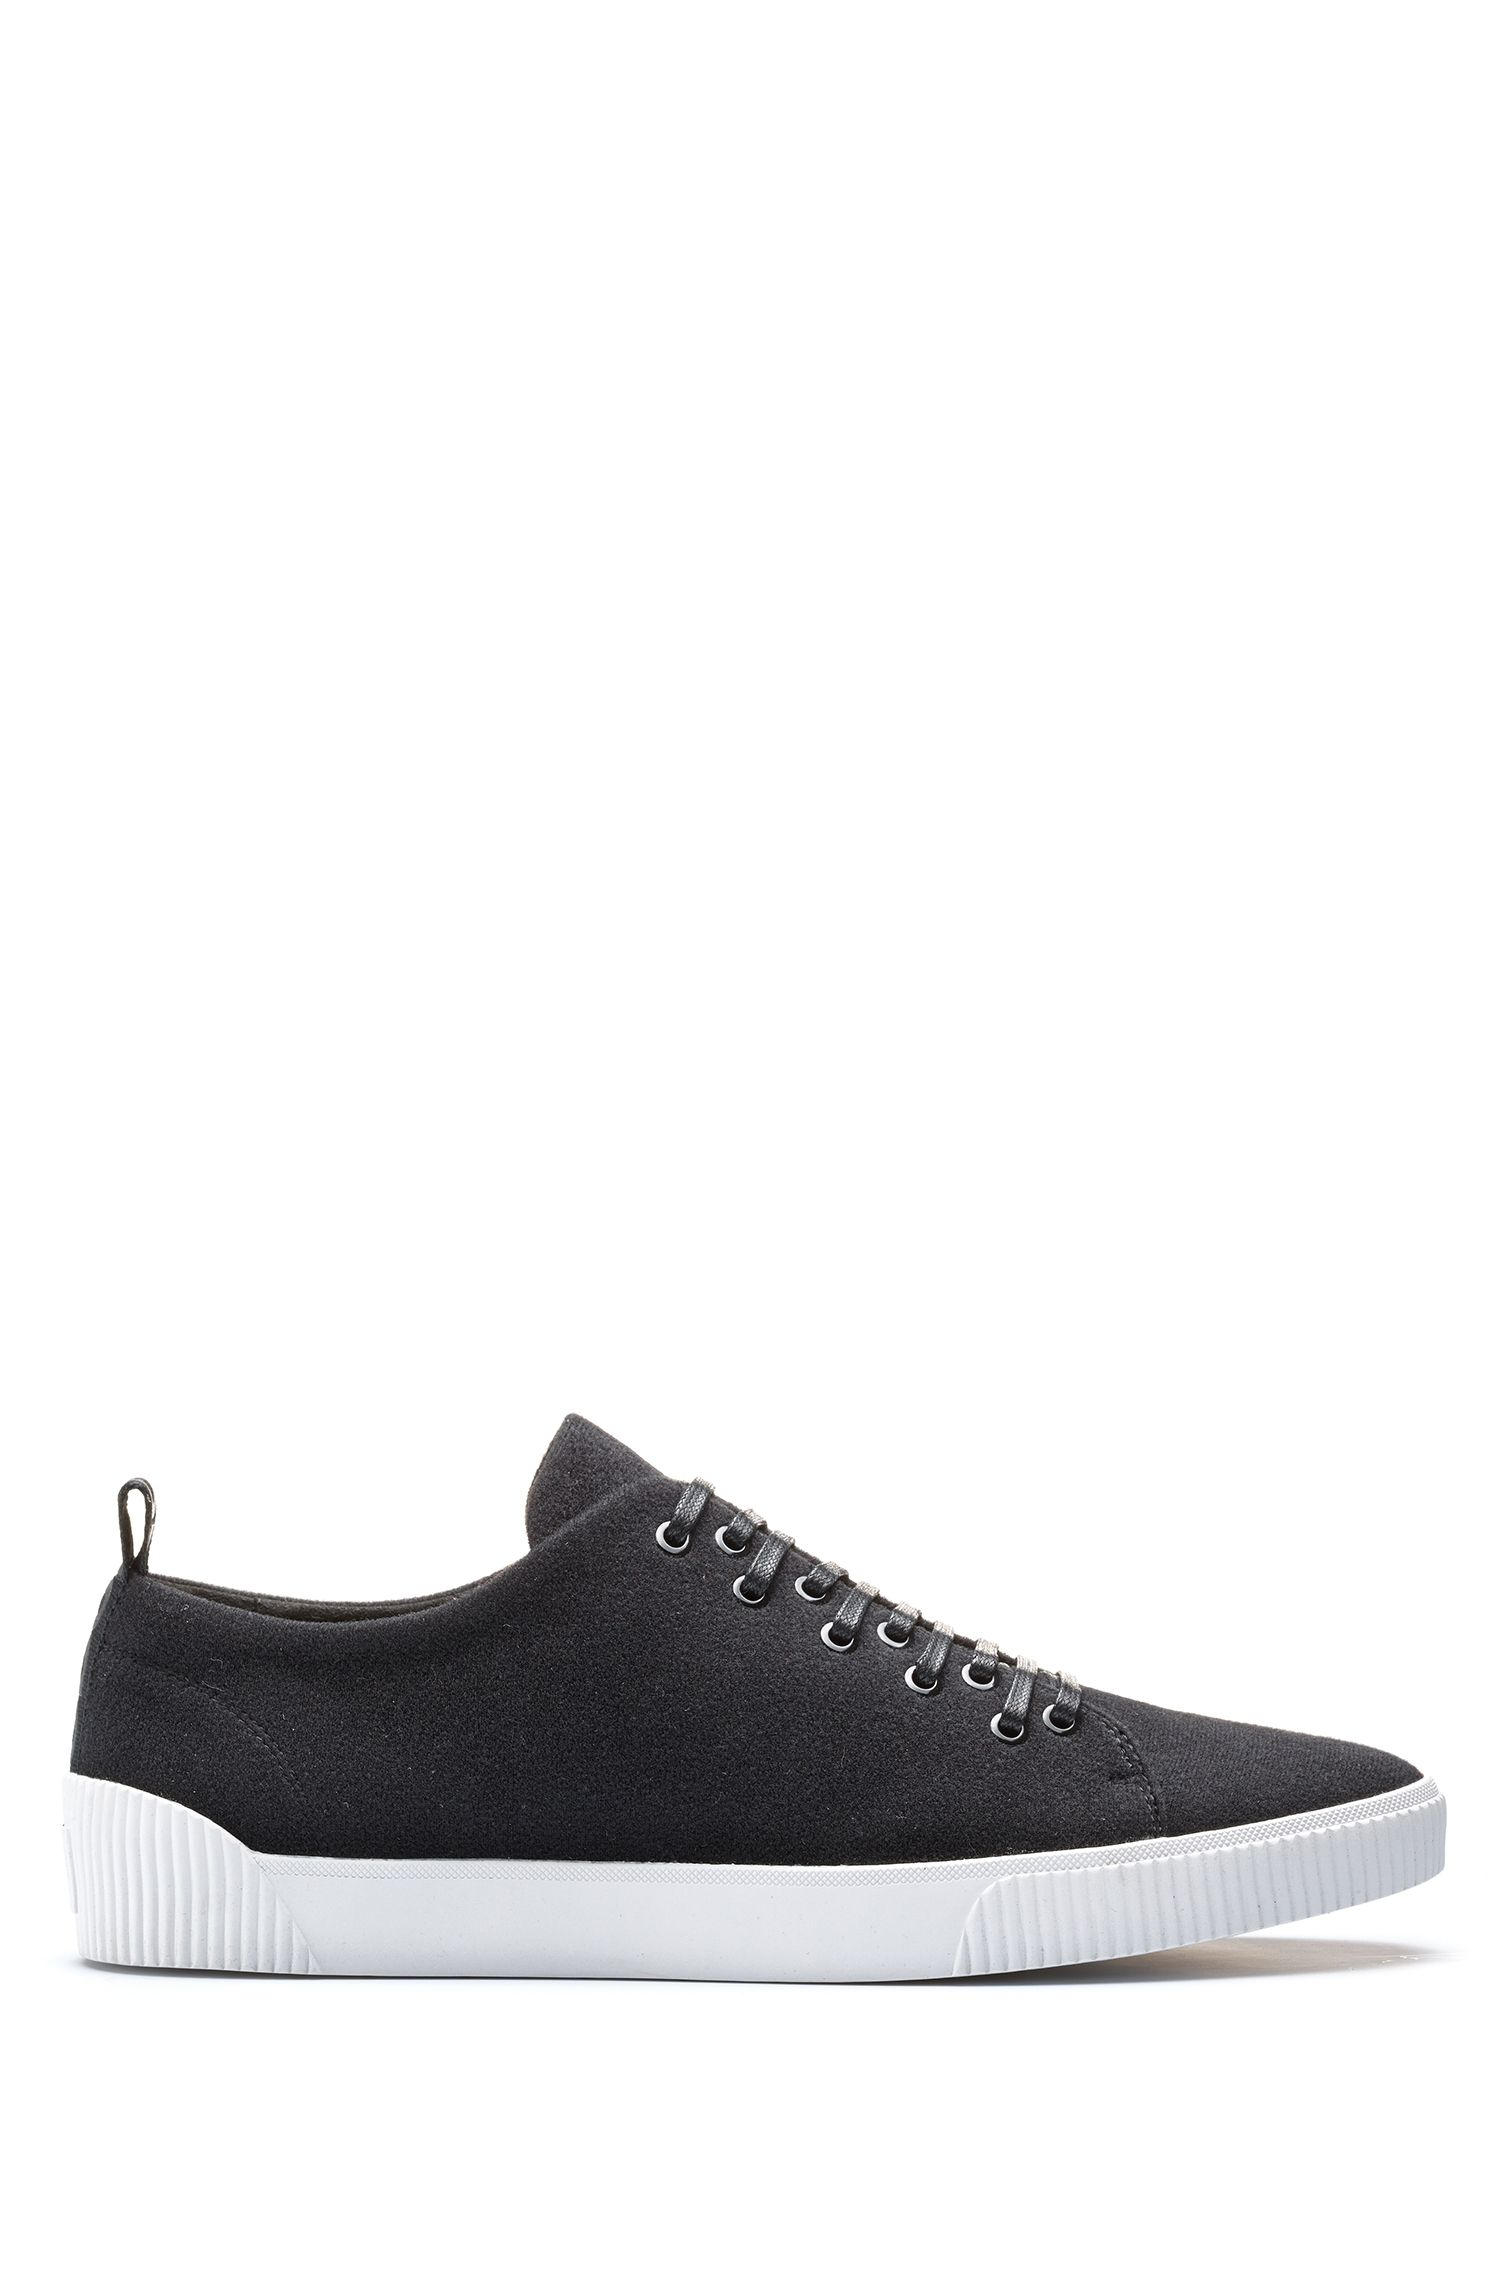 Tennis-inspired sneakers with removable patch detailing, Black